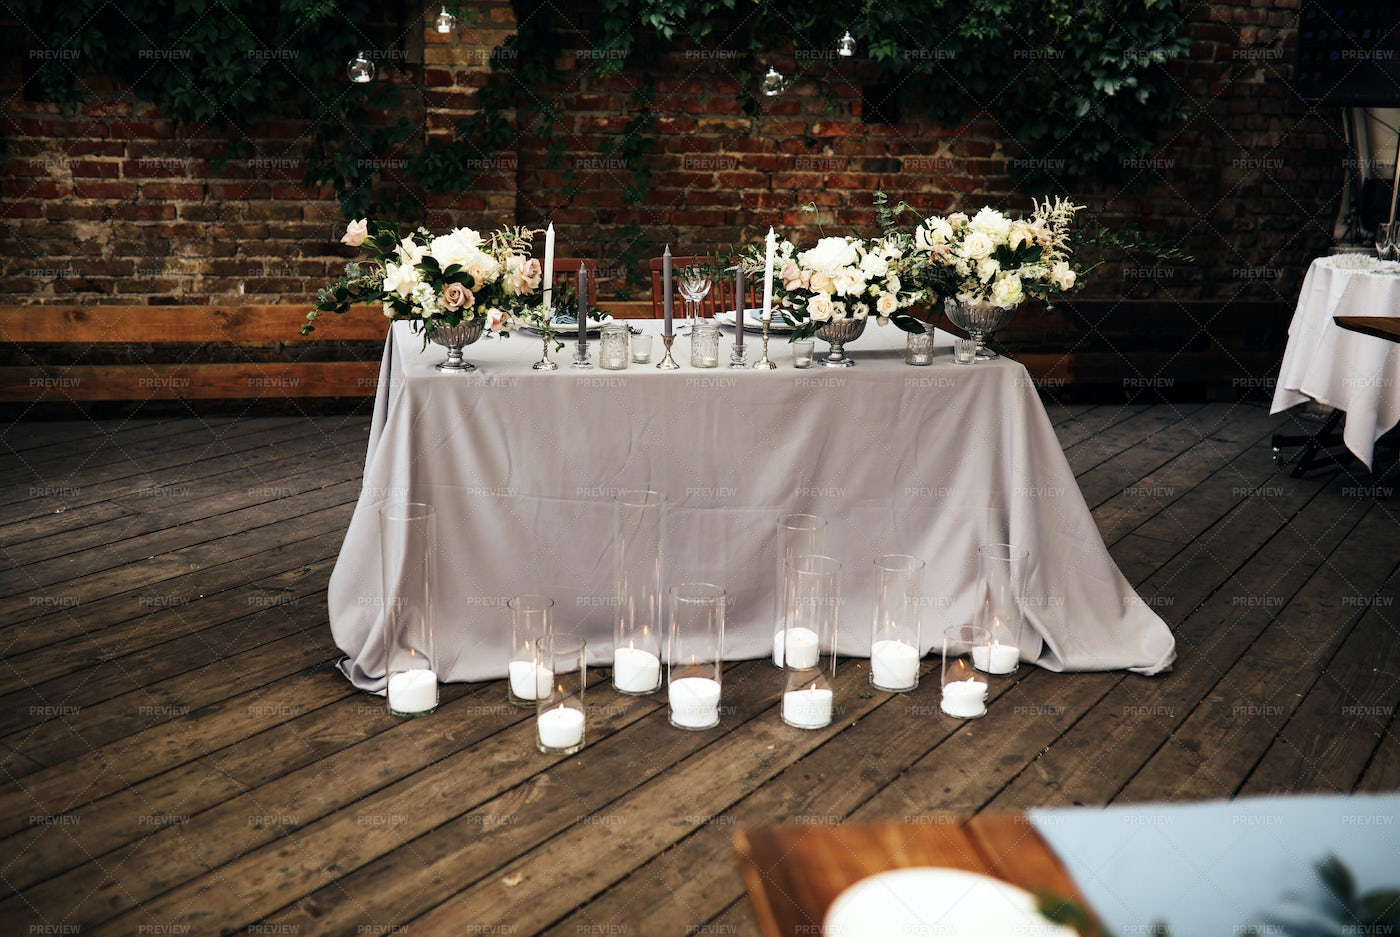 Candles On The Wedding Table: Stock Photos